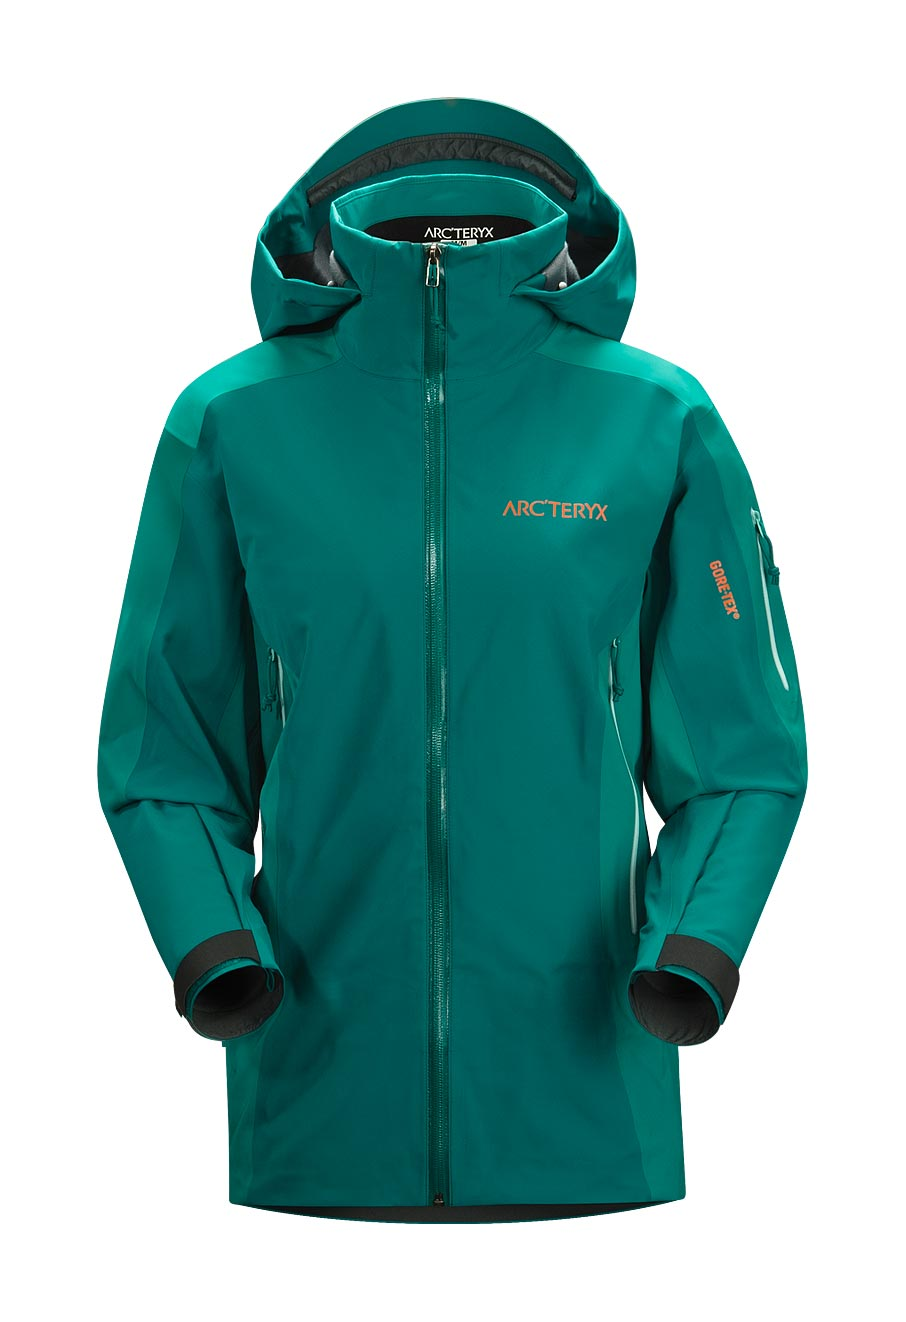 Arcteryx Peacock Stingray Jacket